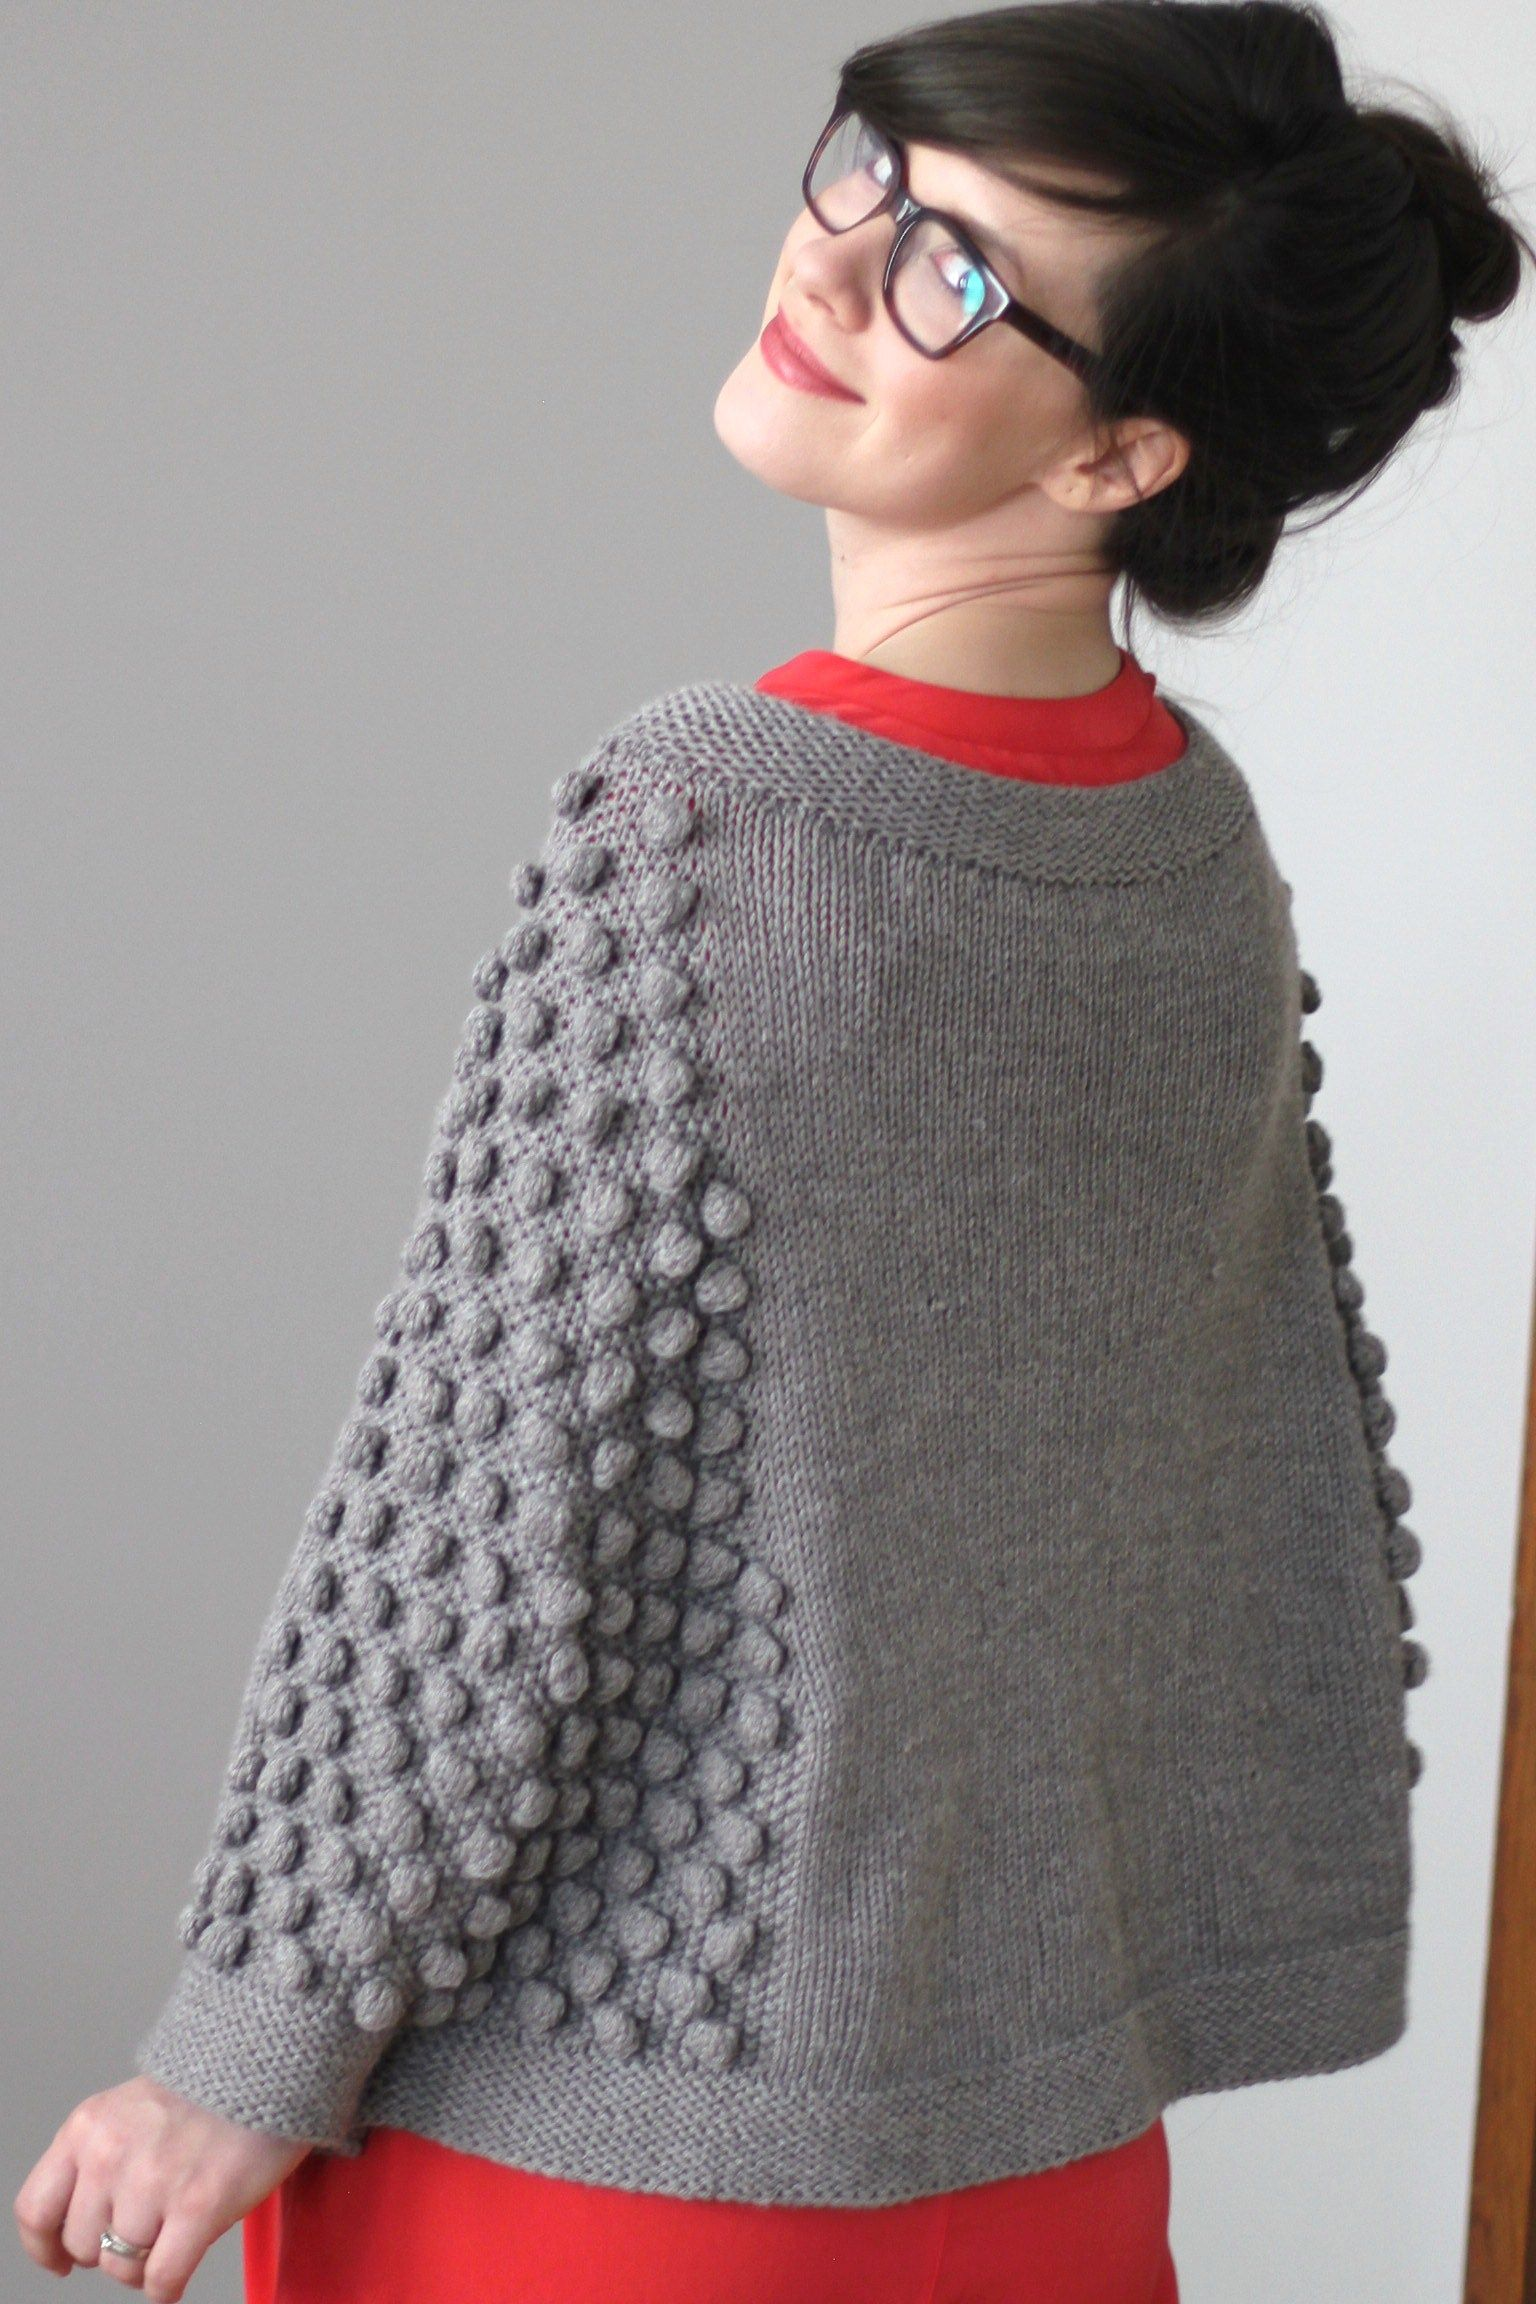 El Matador Pattern - Knitting Patterns and Crochet Patterns from ...